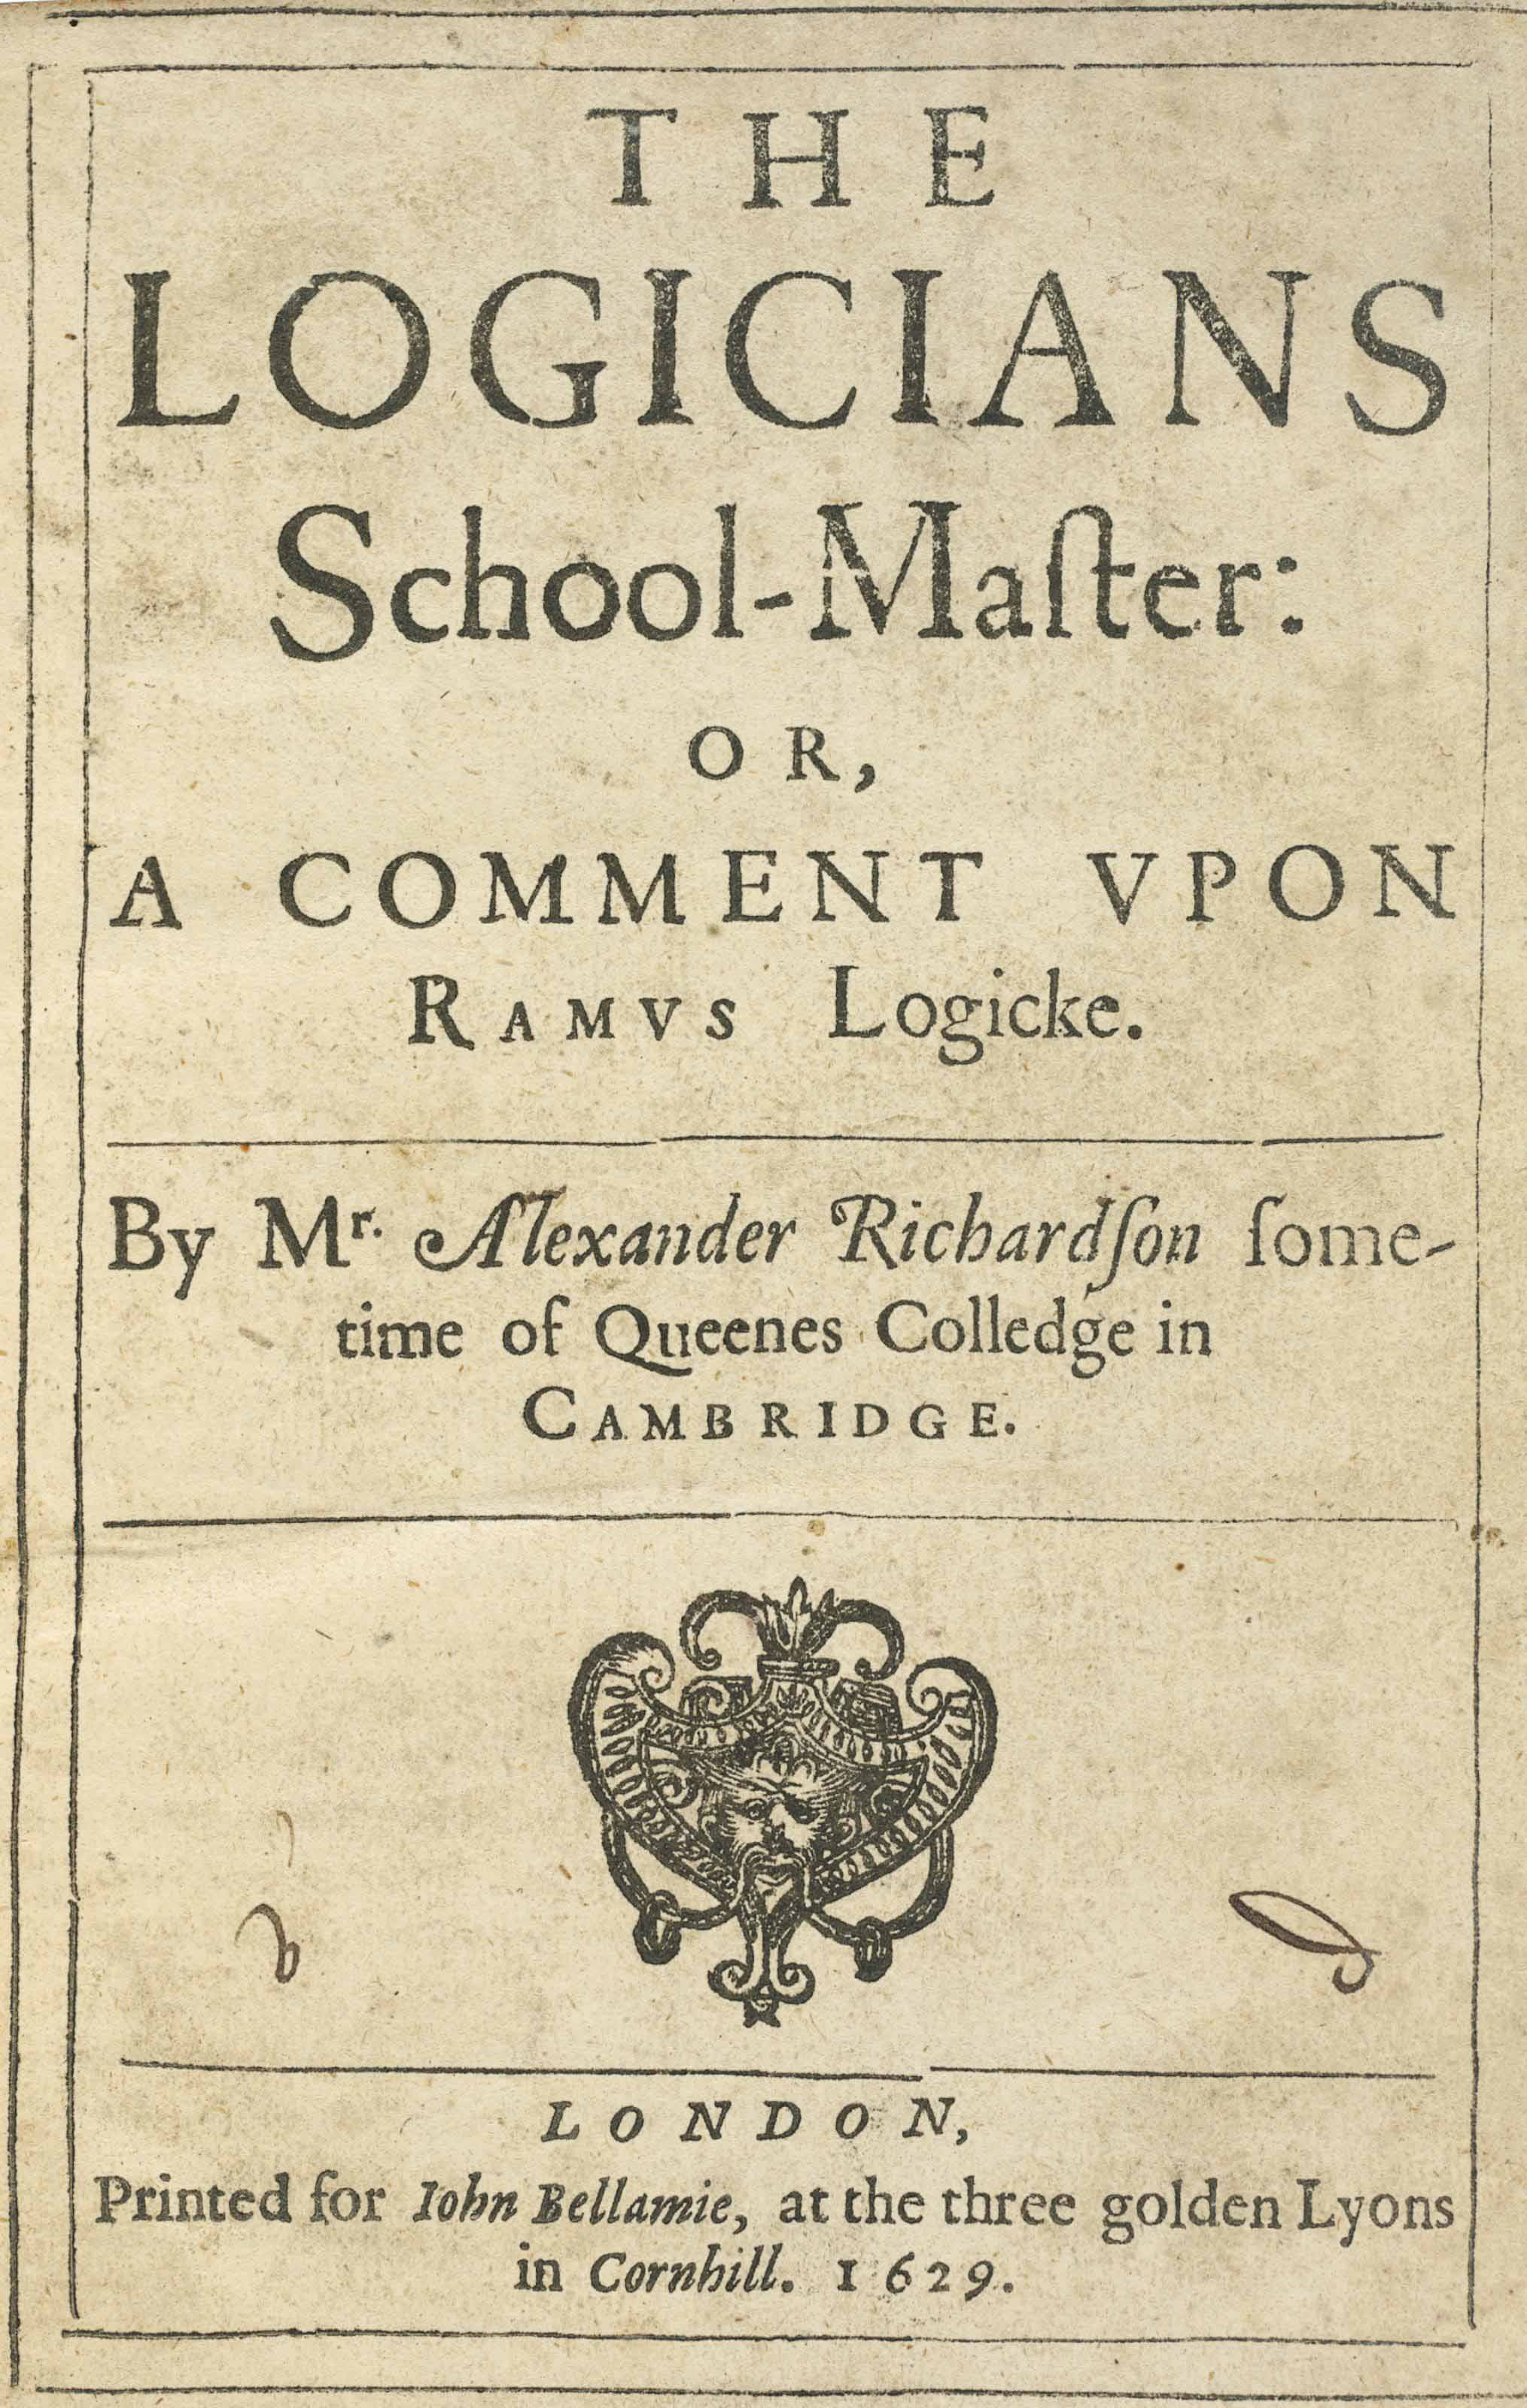 RICHARDSON, Alexander (d. in or before 1621).  The Logicians School-Master or A Comment upon Ramus Logicke. London: [Miles Flesher] for John Bellamie, 1629. 4° (184 x 125mm). Title ornament, woodcut initials. (Marginal worming rather rife in places and occasionally affecting text, without front blank.) Contemporary blind-panelled calf (rubbed, wormed, title crudely lettered on spine). Provenance: Milo Gale (early signature at front).